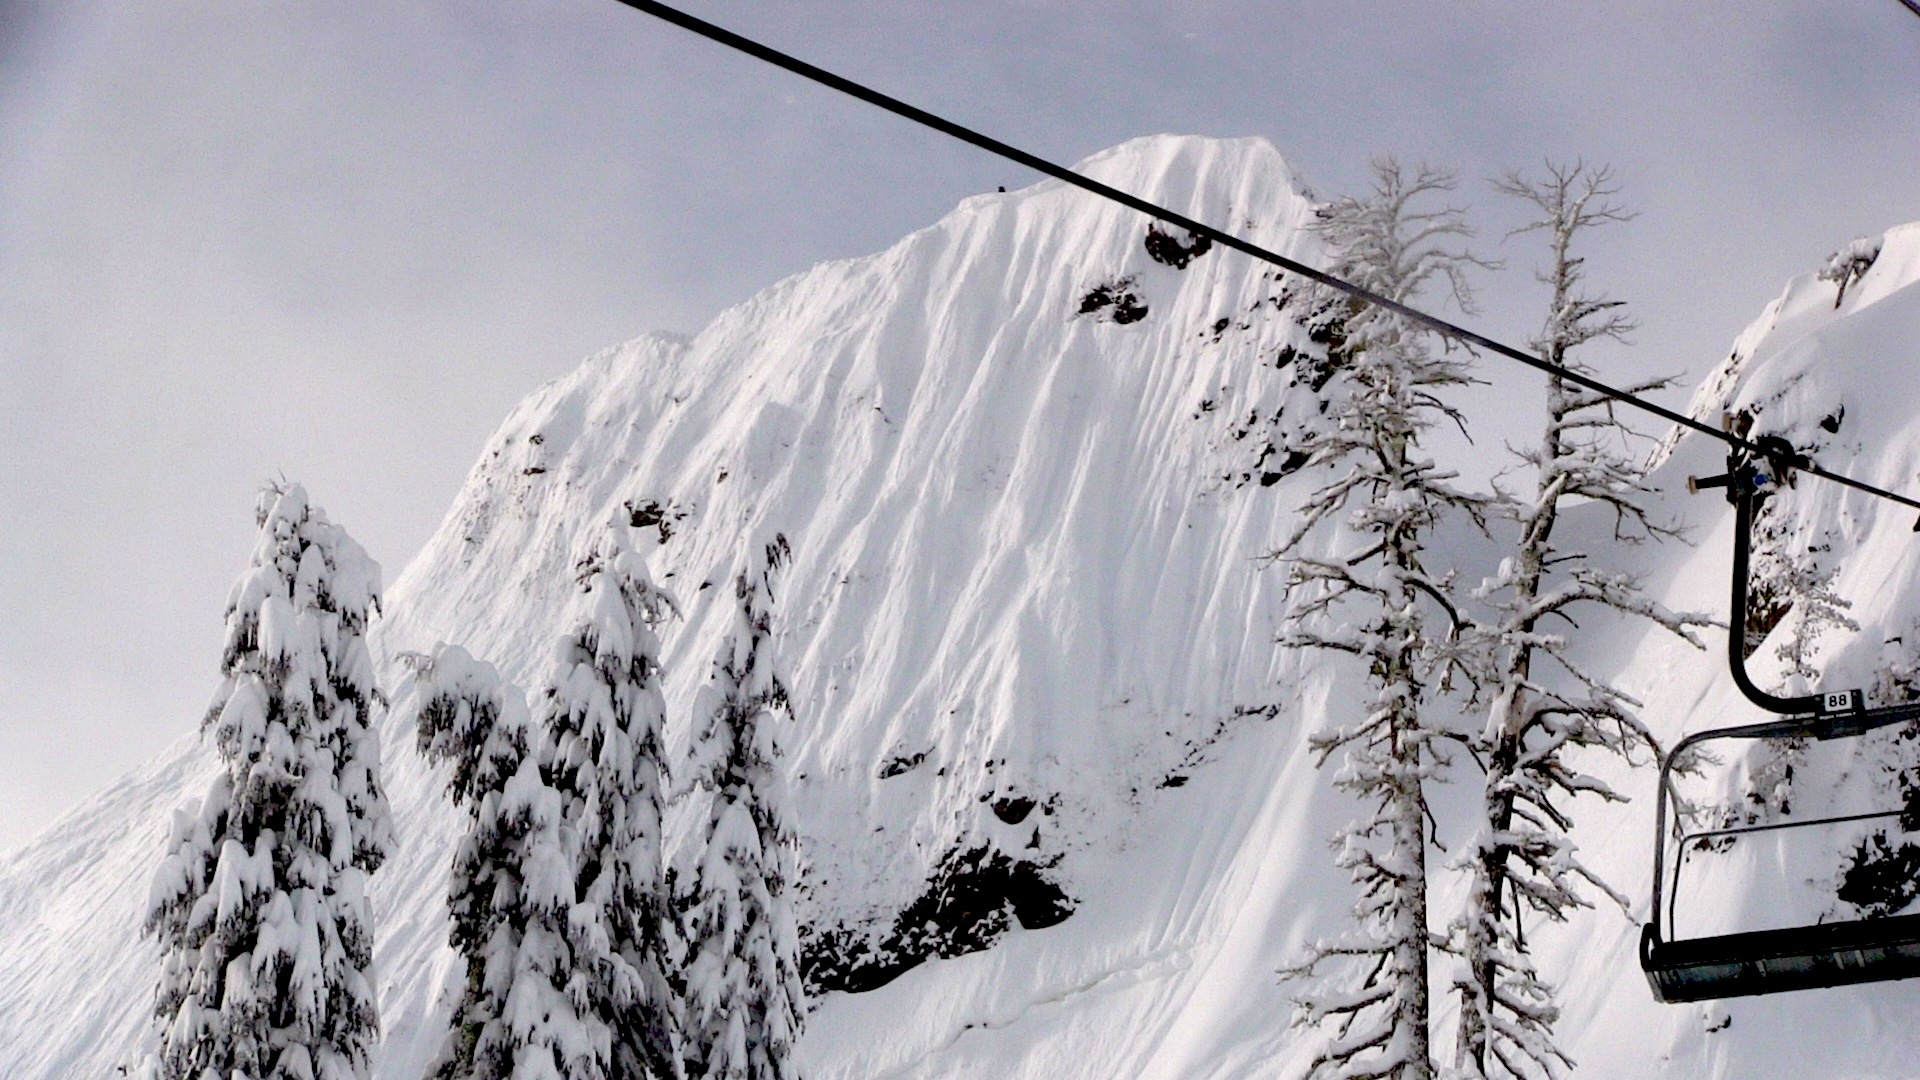 McConkey's (Eagle's Nest) at Squaw Valley in 2011. photo: miles clark/snowbrains